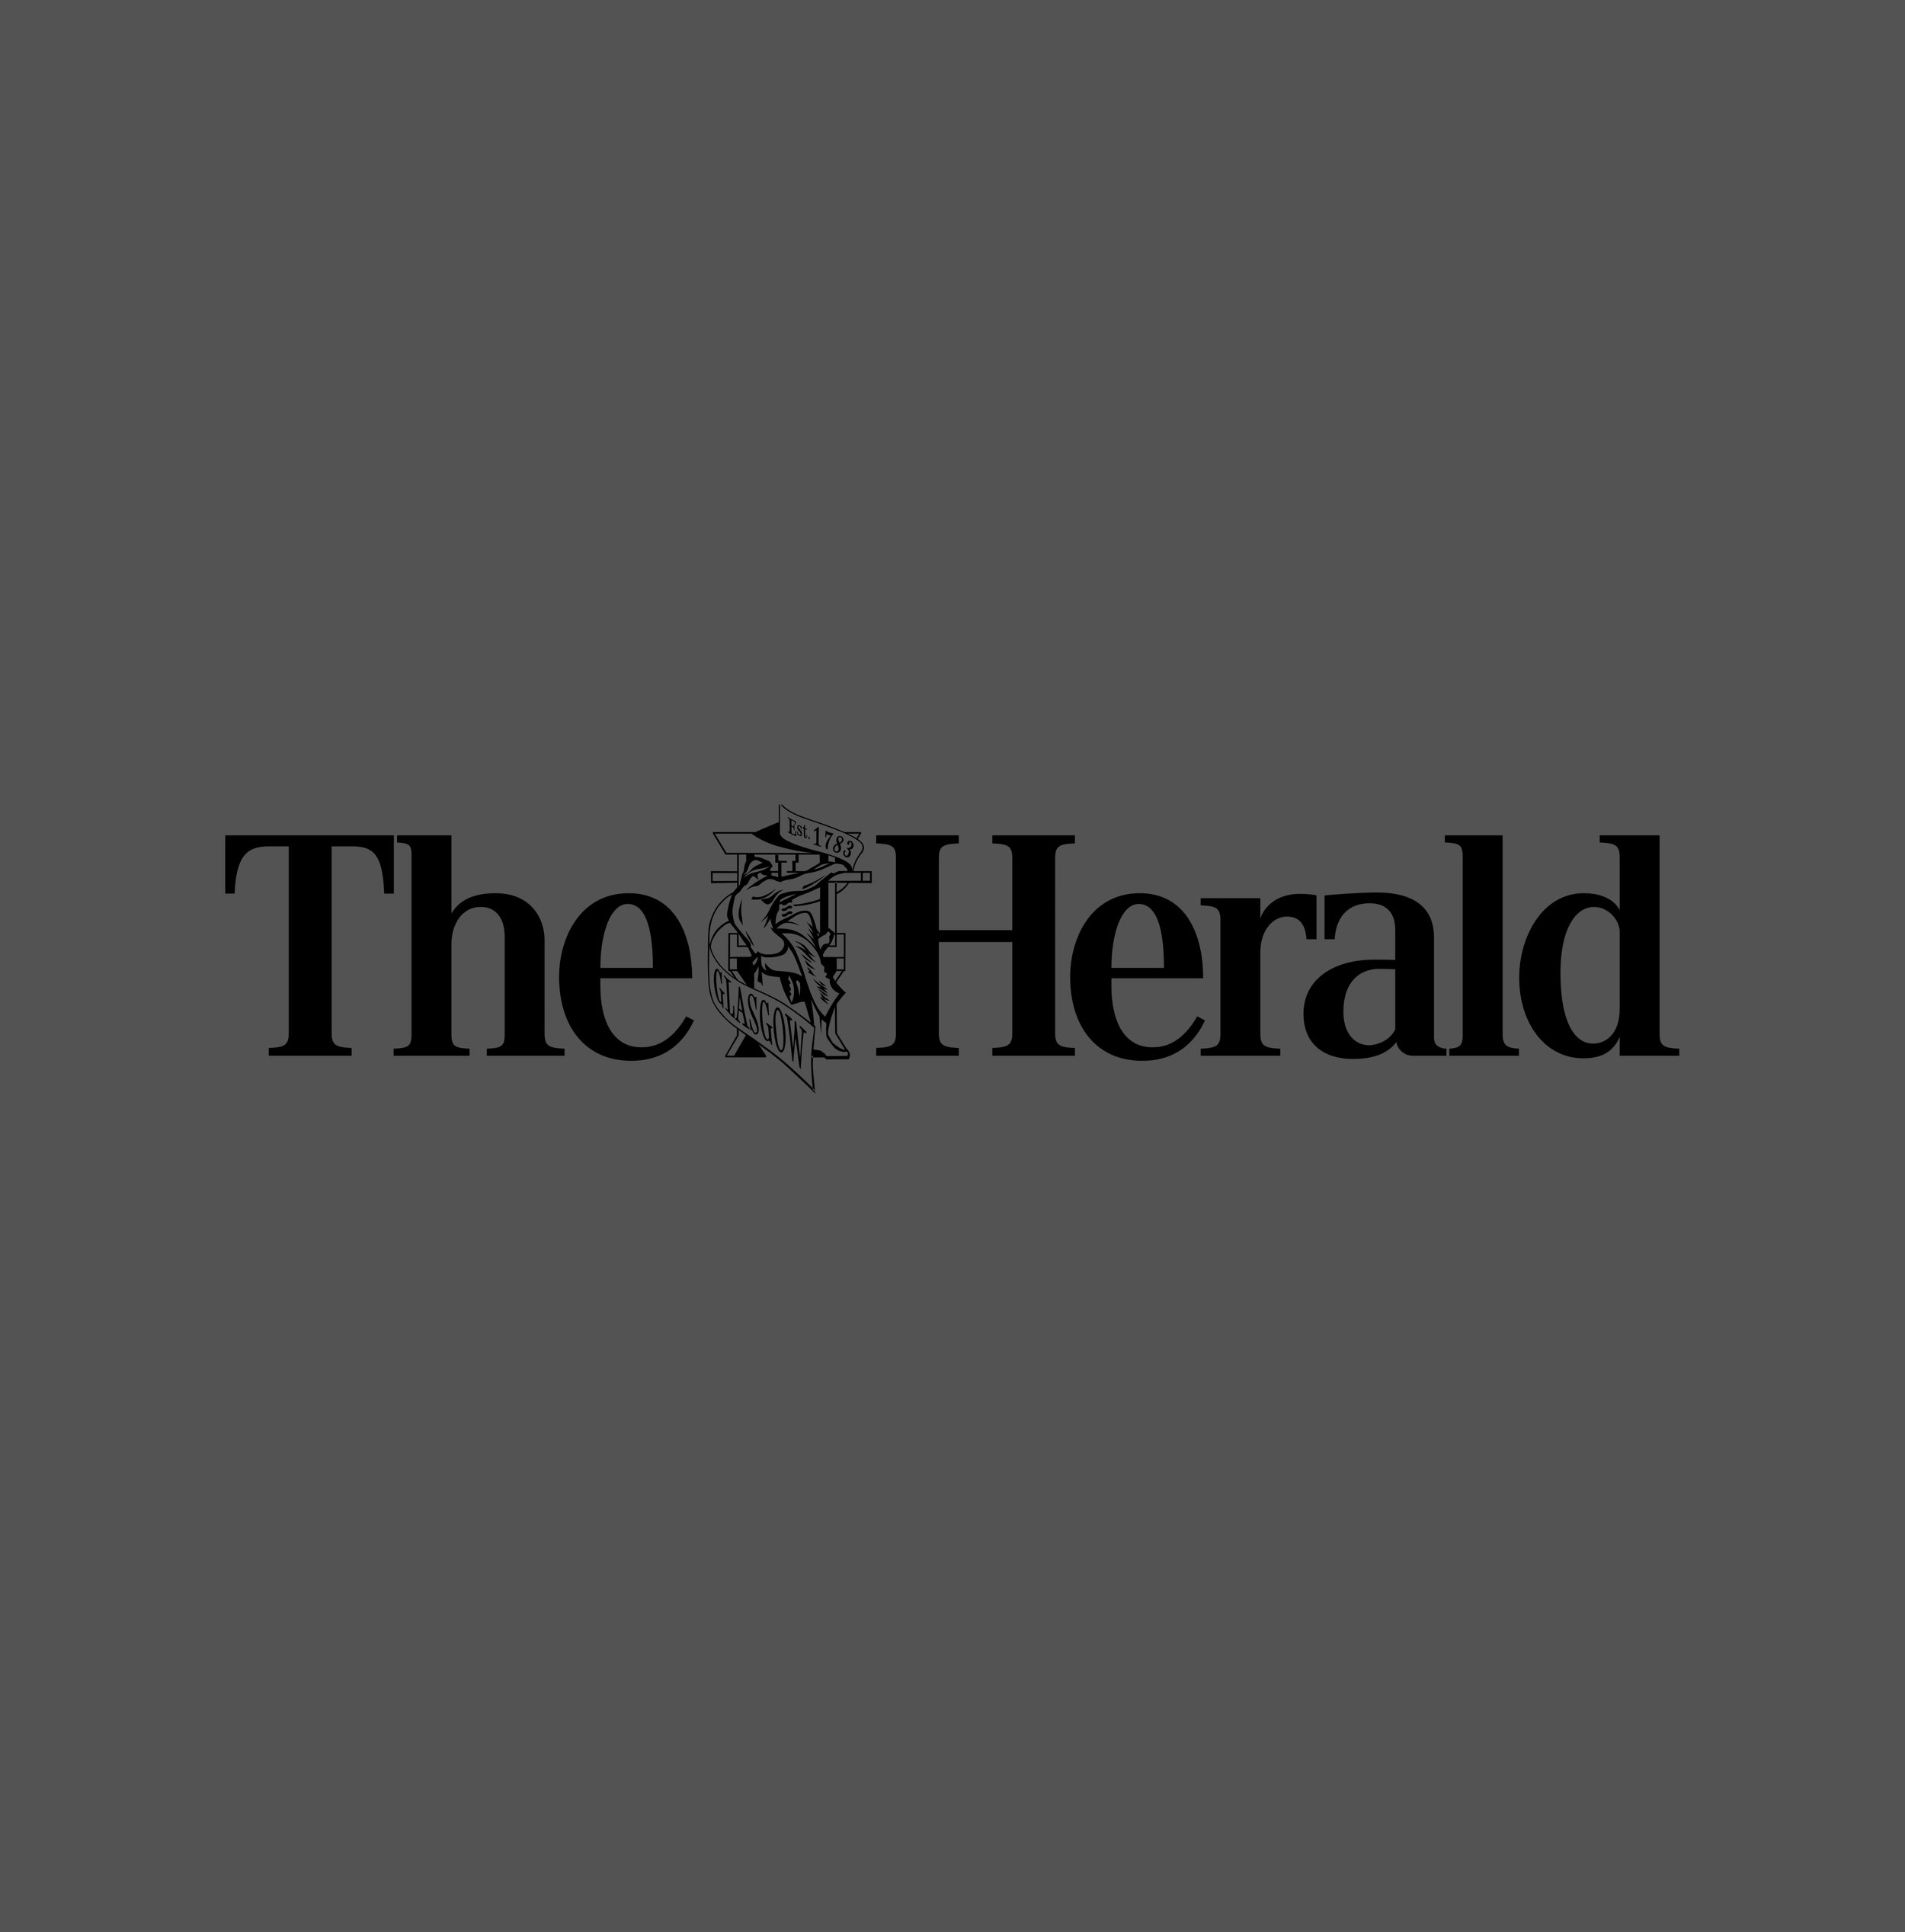 The_Herald_logo.jpg